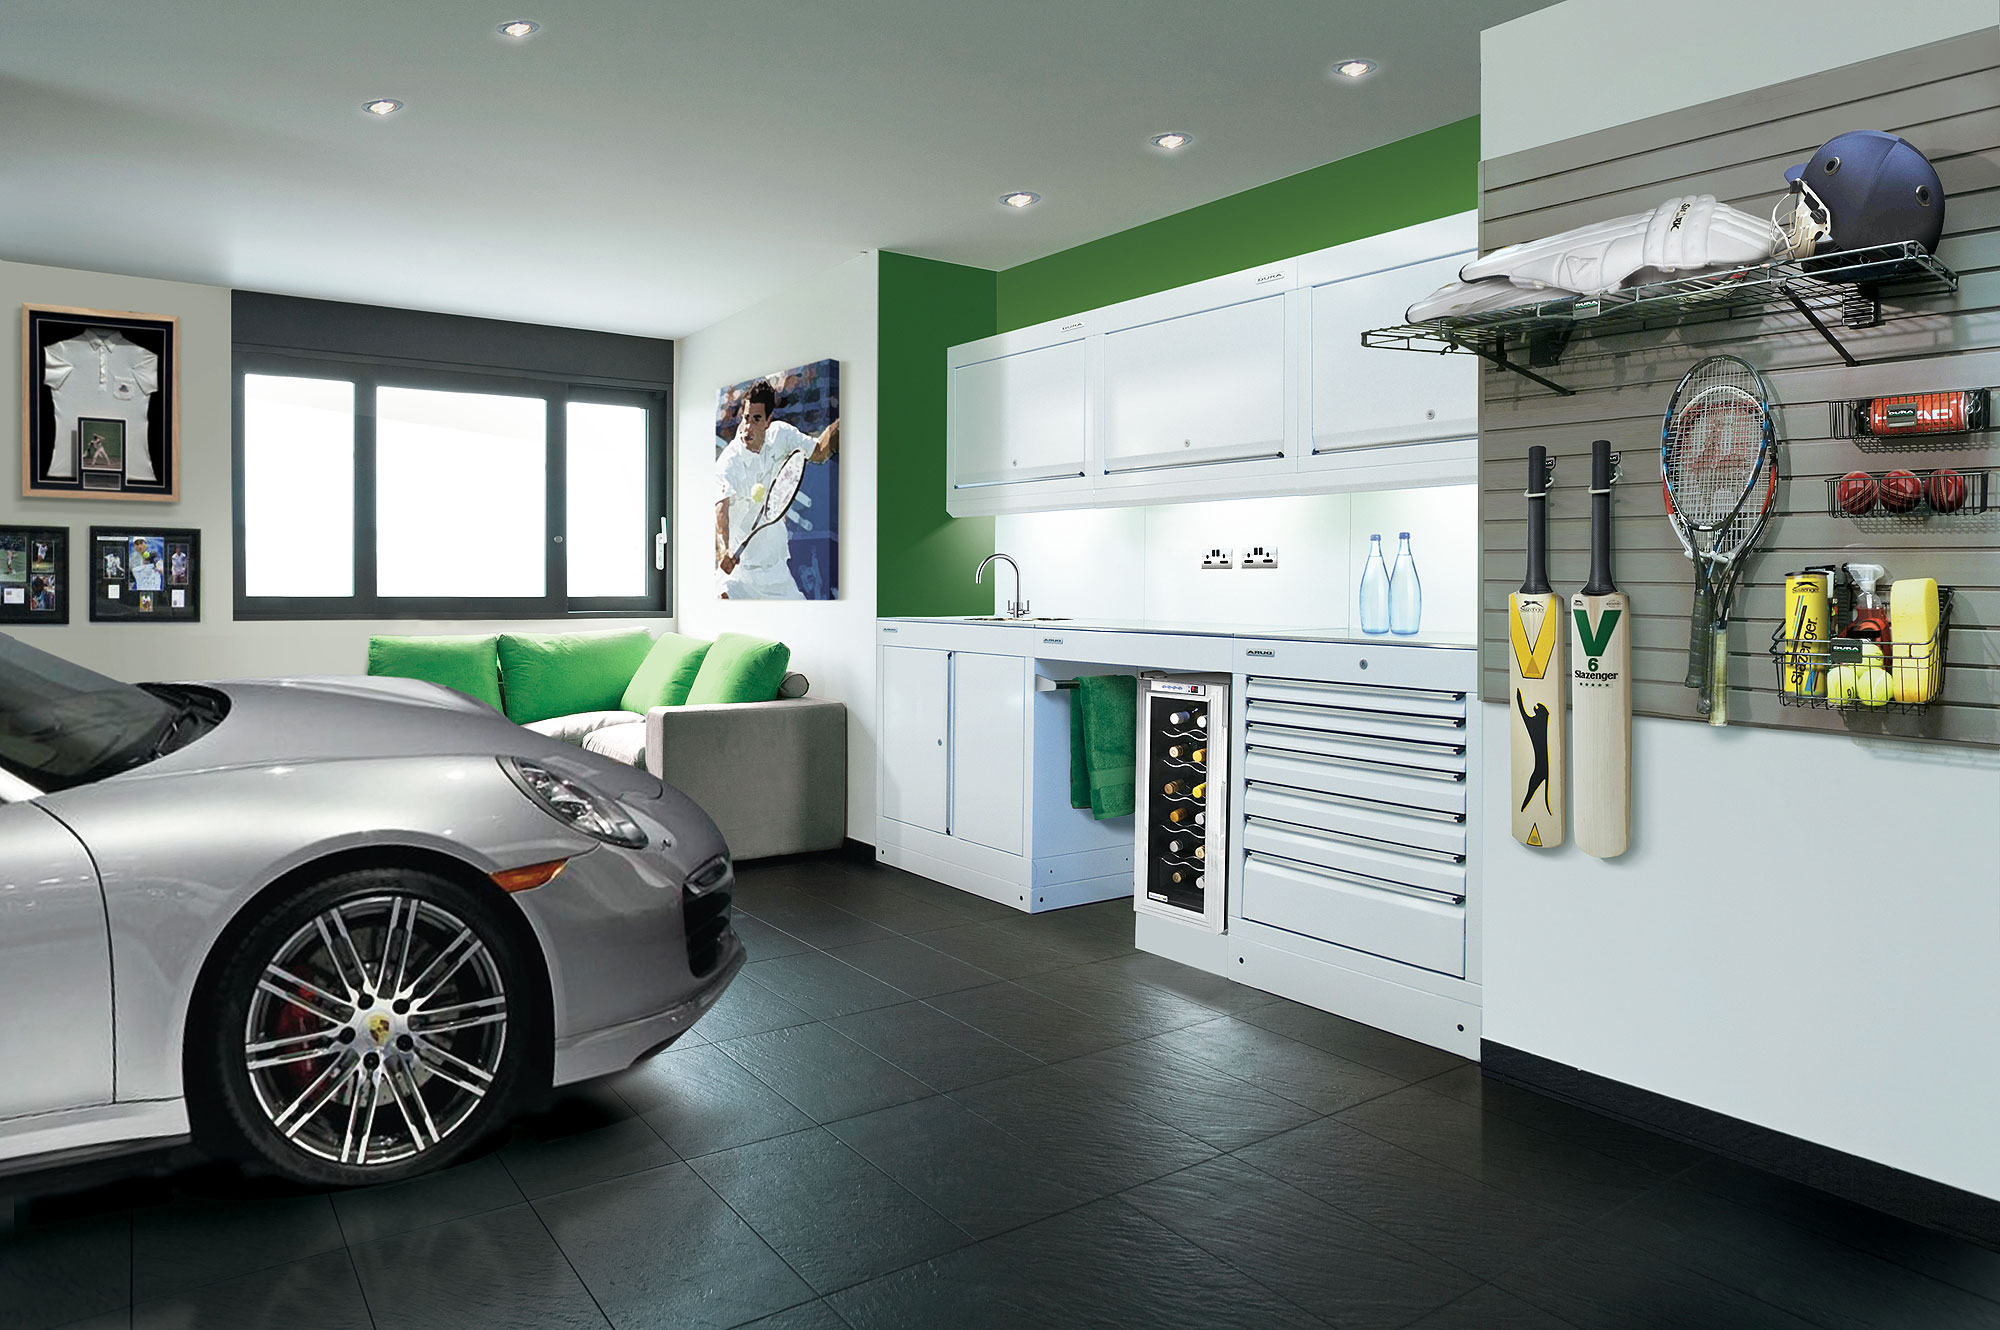 3 car garage ideas - 3 car garage interior design ideas – Interior Design